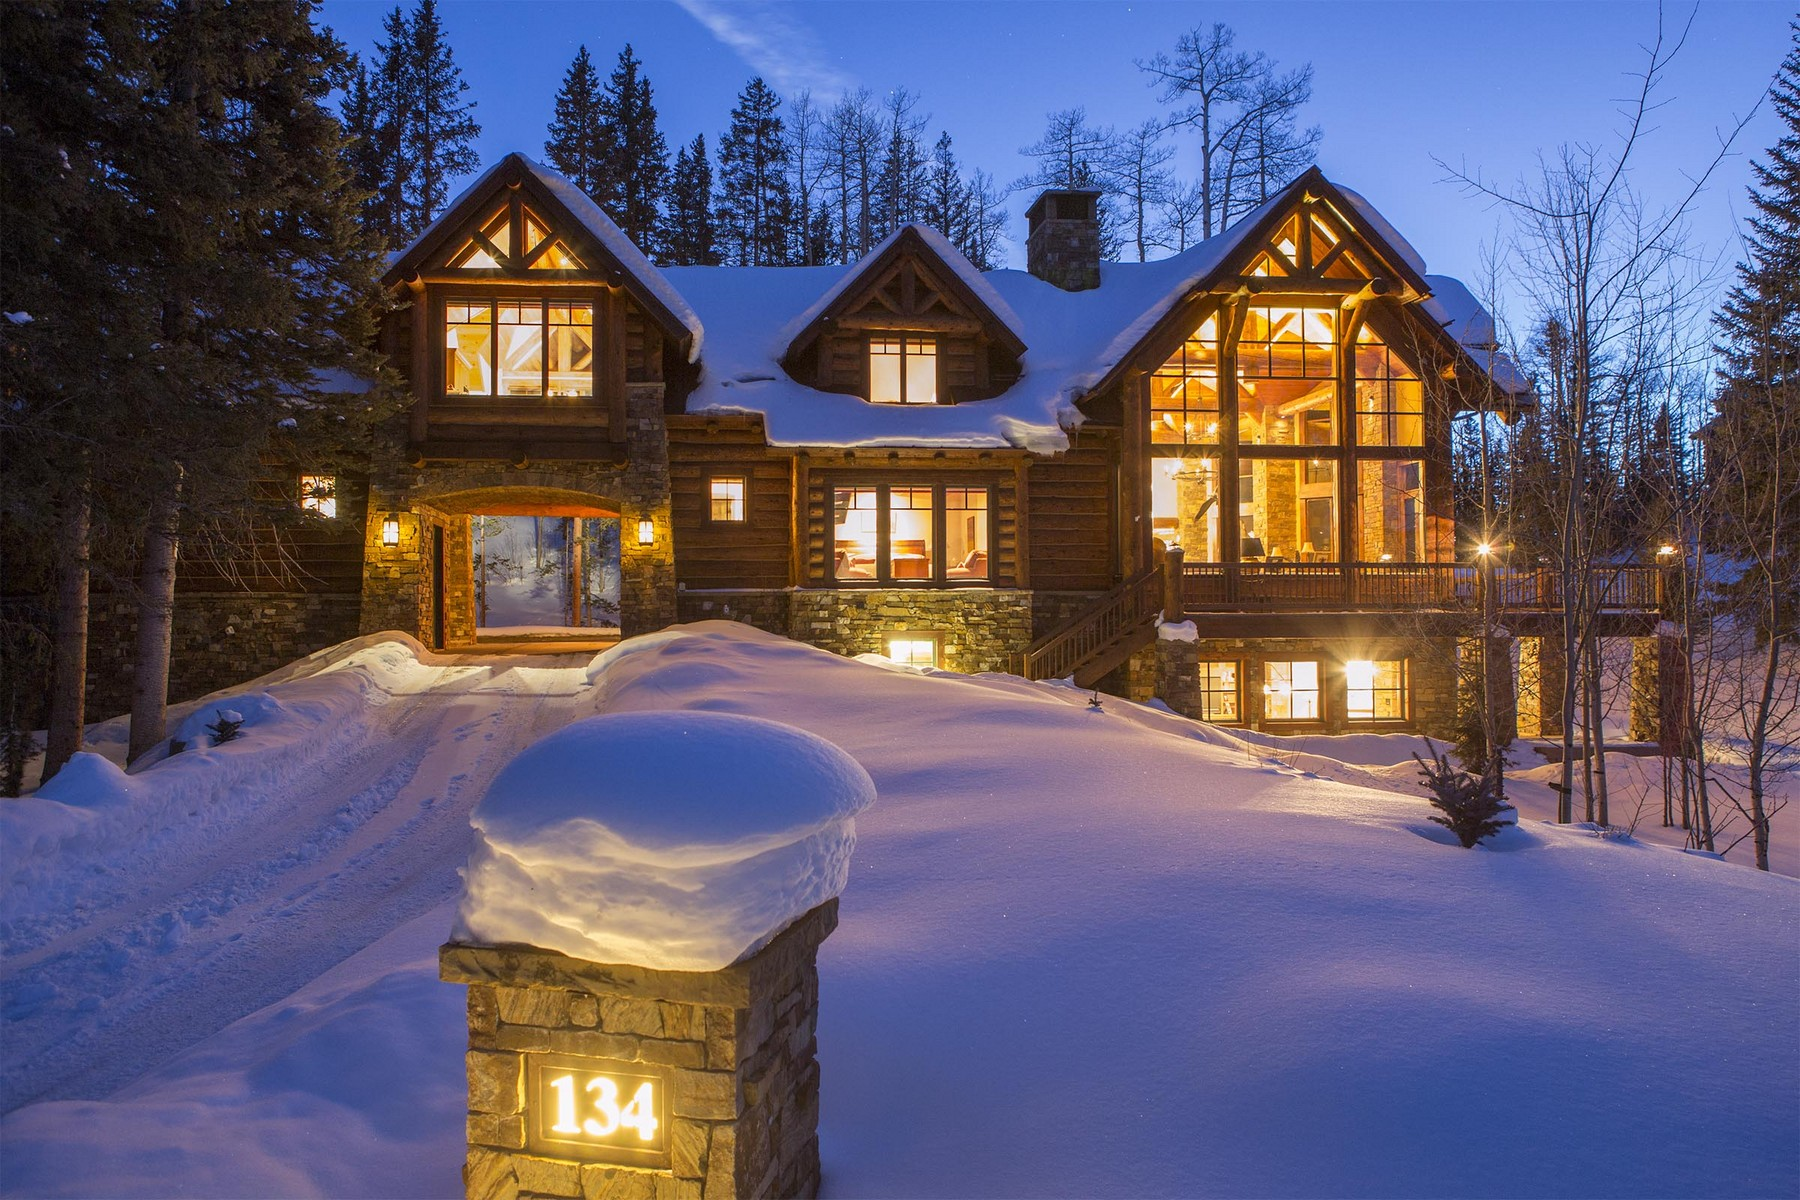 Maison unifamiliale pour l Vente à 134 High Country Road Telluride, Colorado 81435 États-Unis